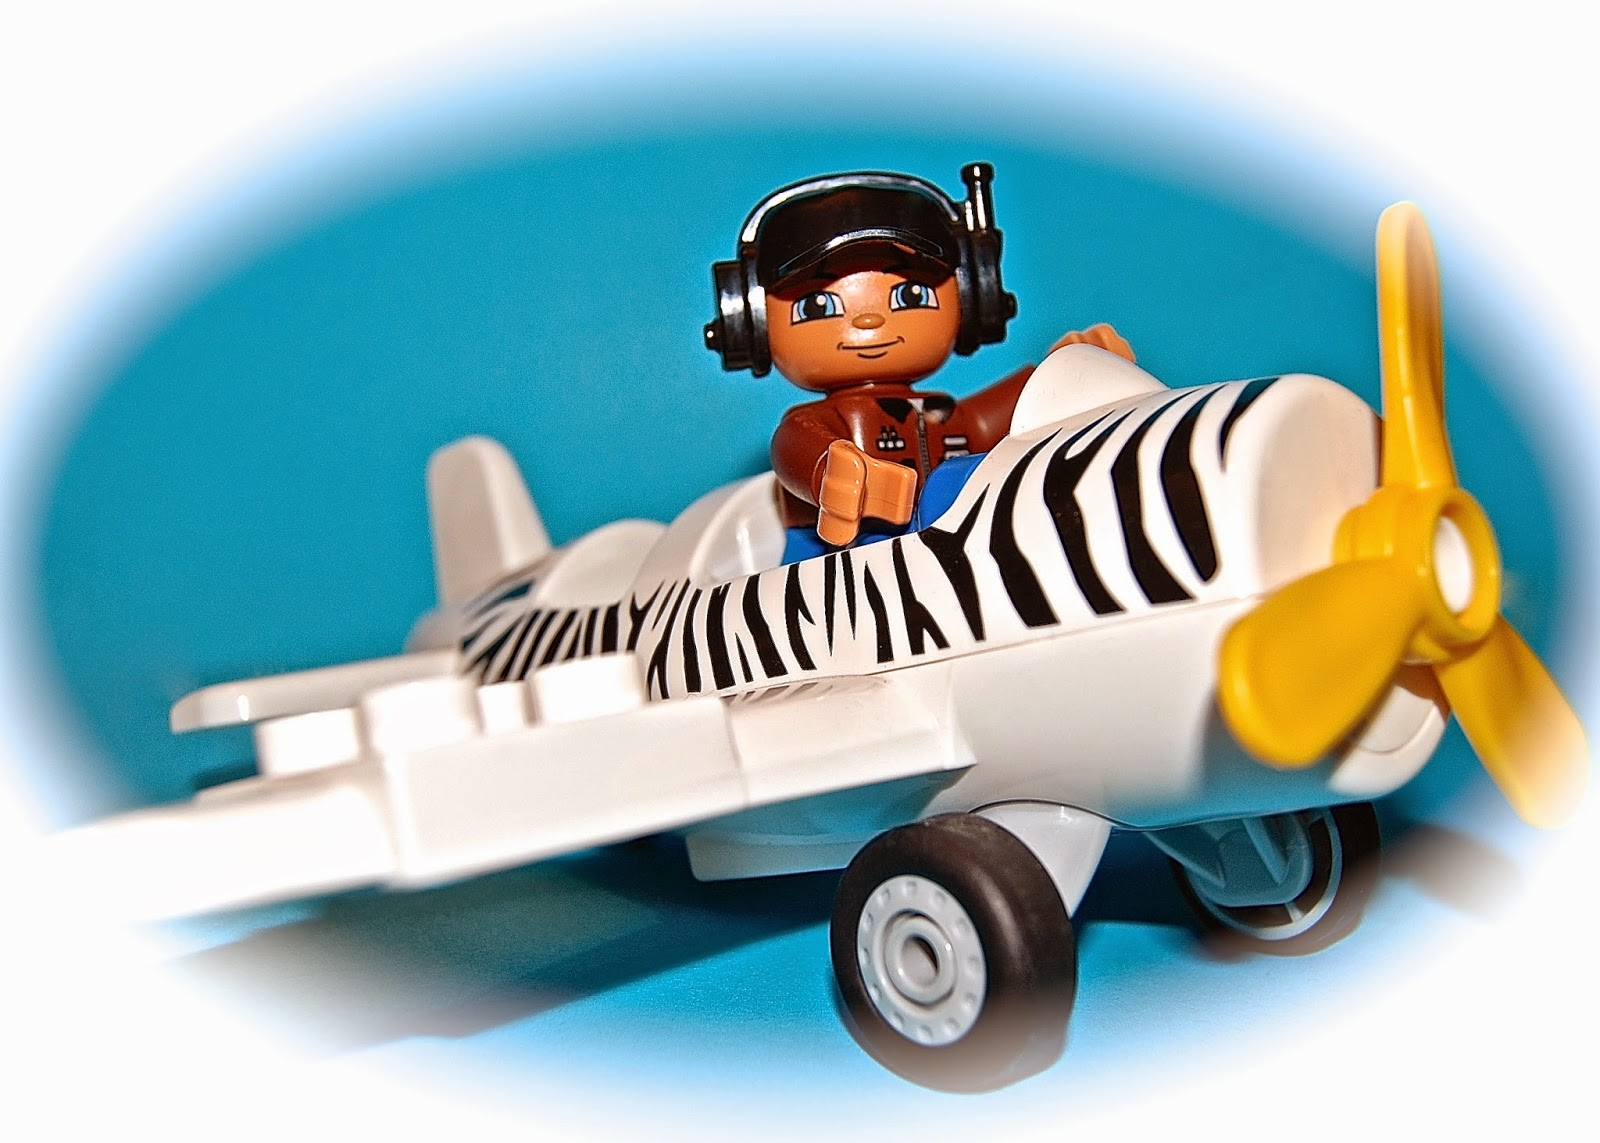 LEGO safari plane and pilot